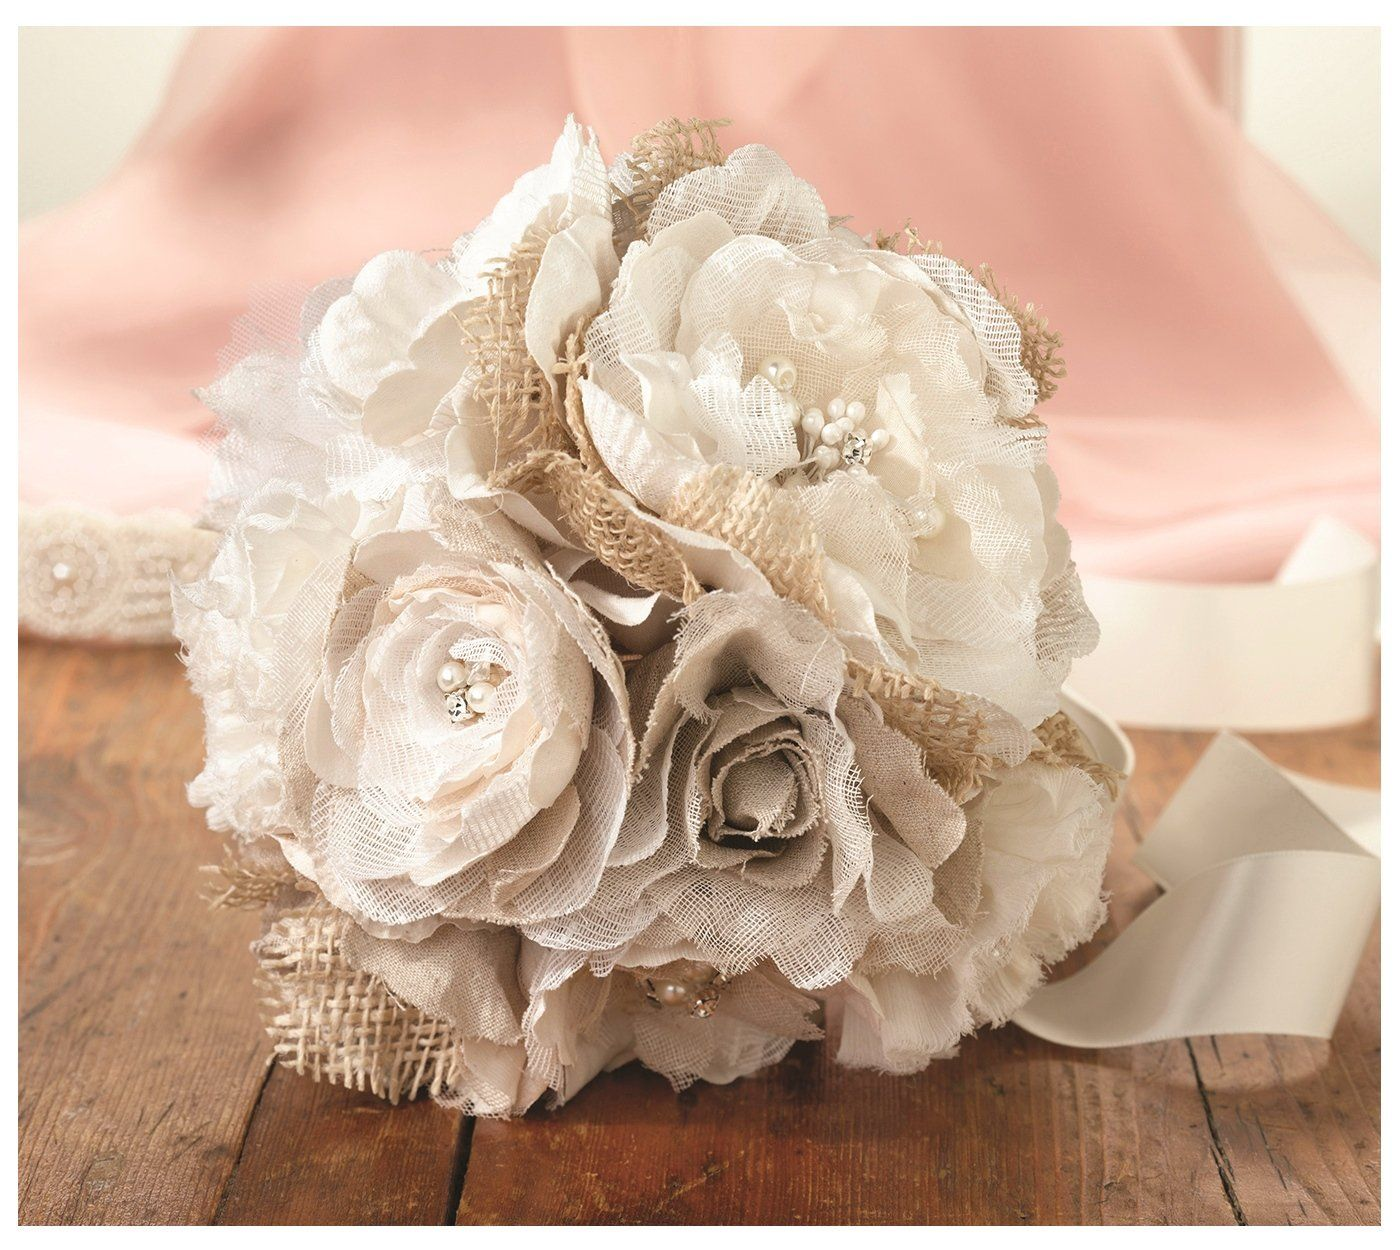 Amazon lillian rose burlap and flower bouquet 75 inch burlap flower wedding bouquet combines burlap cotton fabric flowers shimmering rhinestones with classic pearls into this gorgeous floral arrangement izmirmasajfo